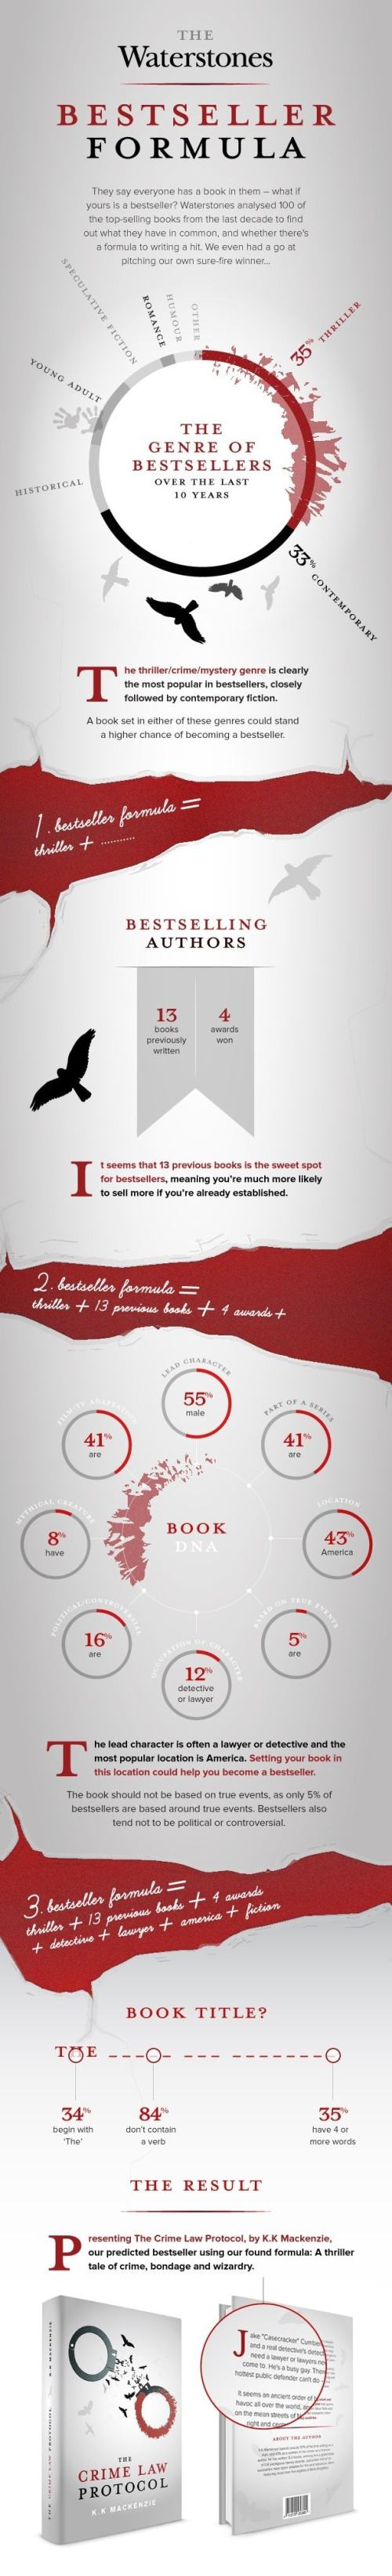 Infographic: The Waterstones Best-Seller Formula Bookstore Infographic